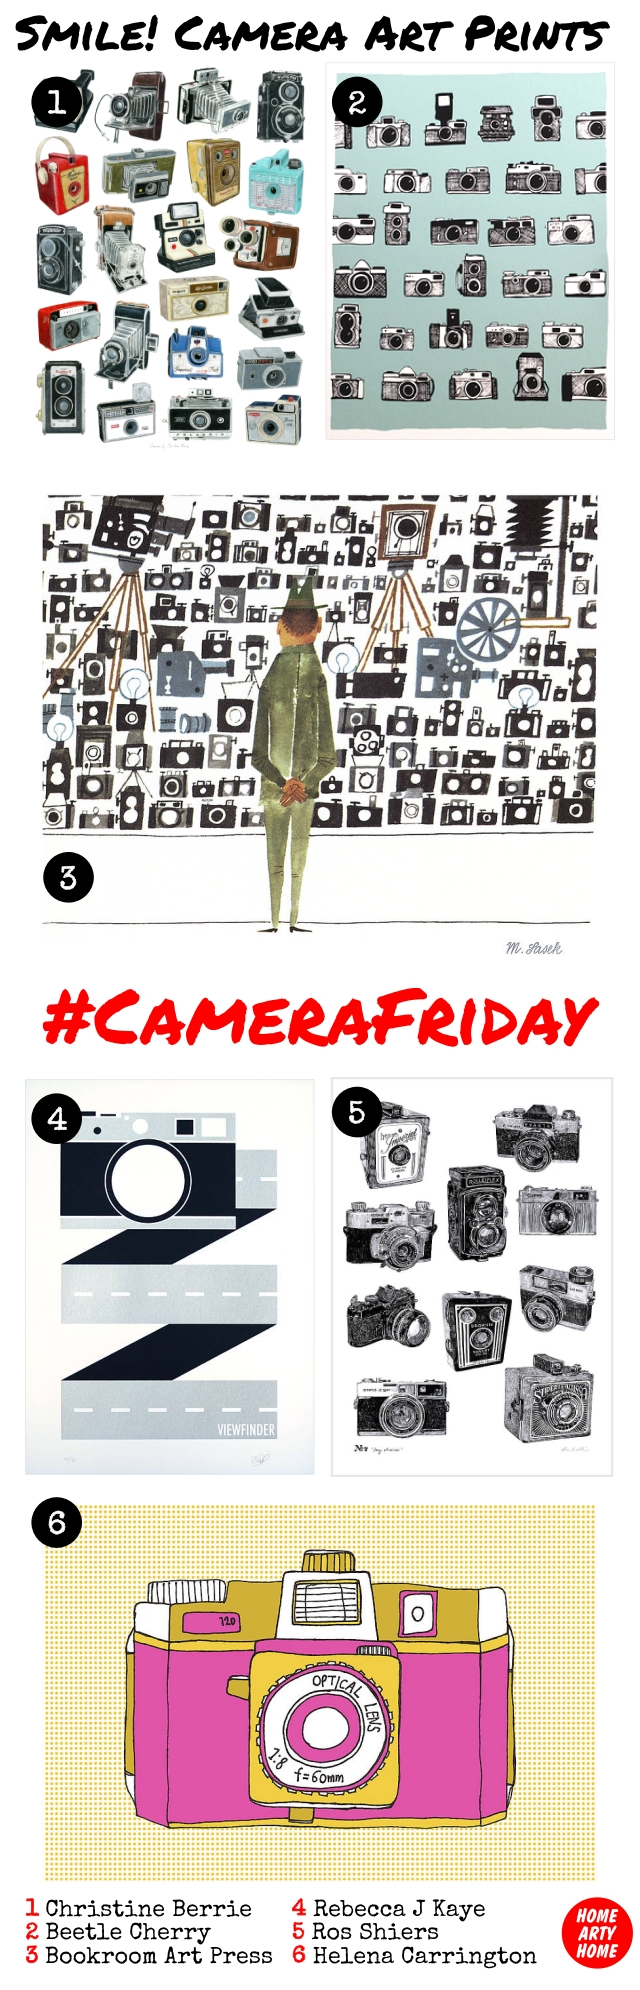 CameraFriday Art Prints homeartyhome